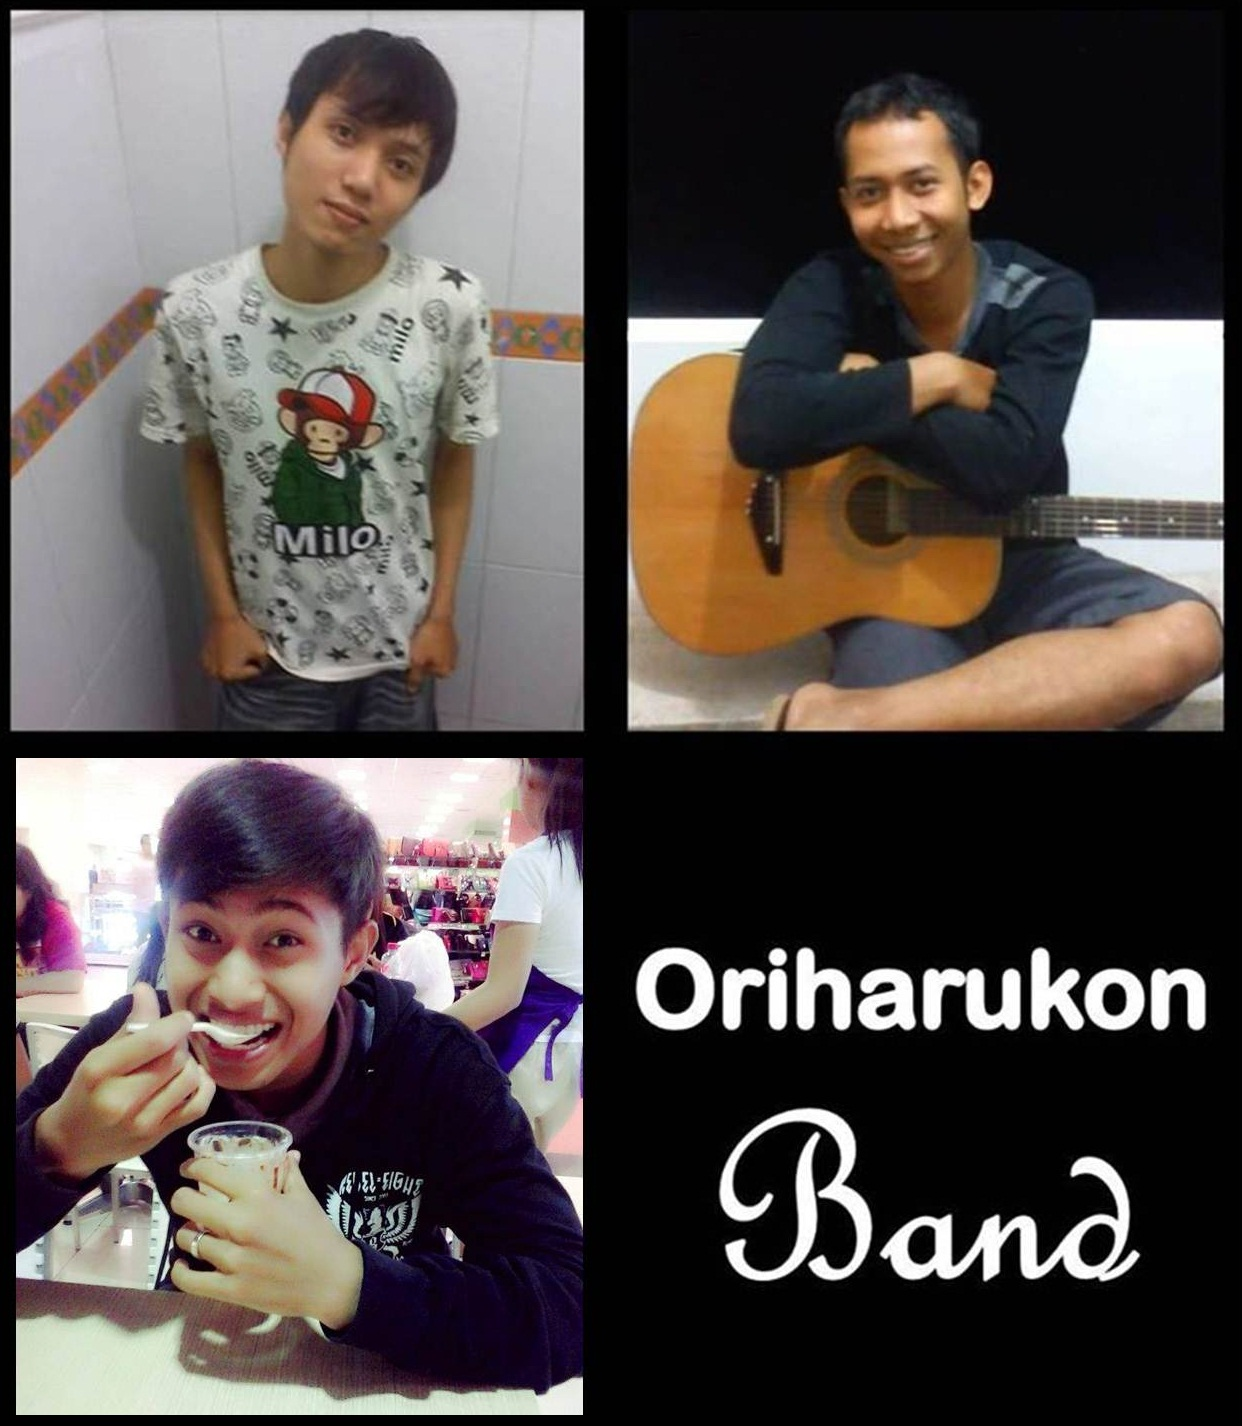 Monster Bego Oriharukon Band Adalah Band Dari Monster Bego